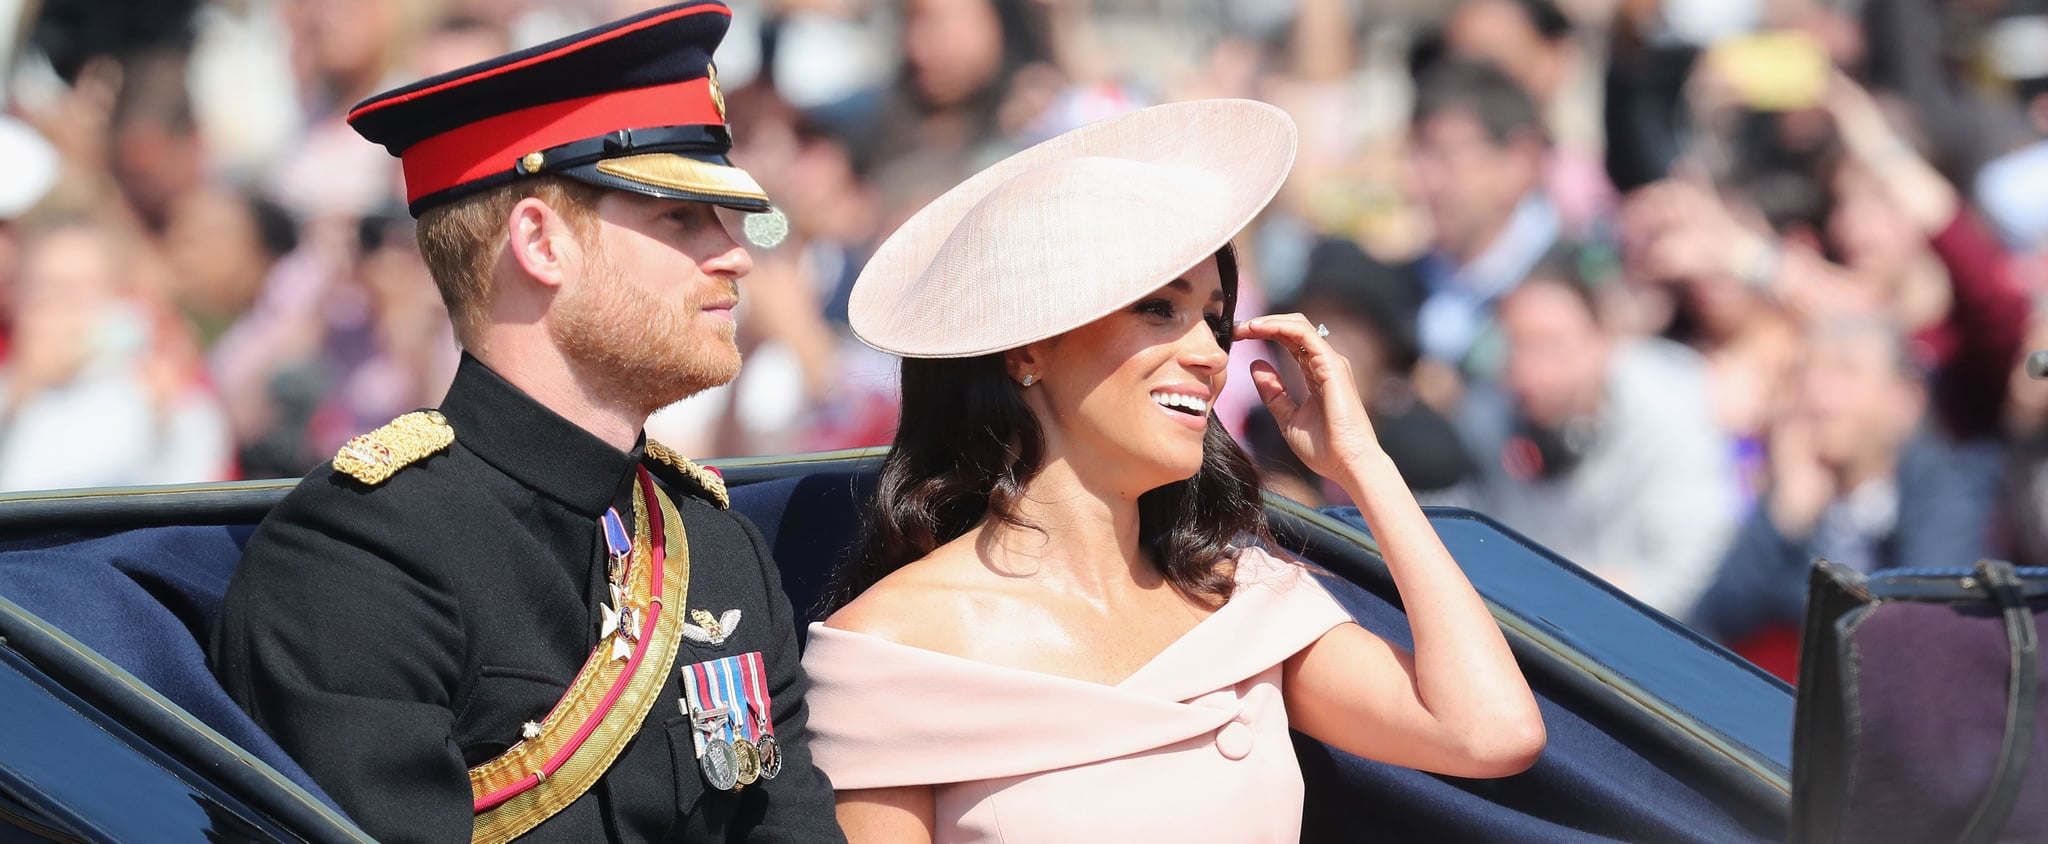 Meghan Markle Breaking Fashion Rules